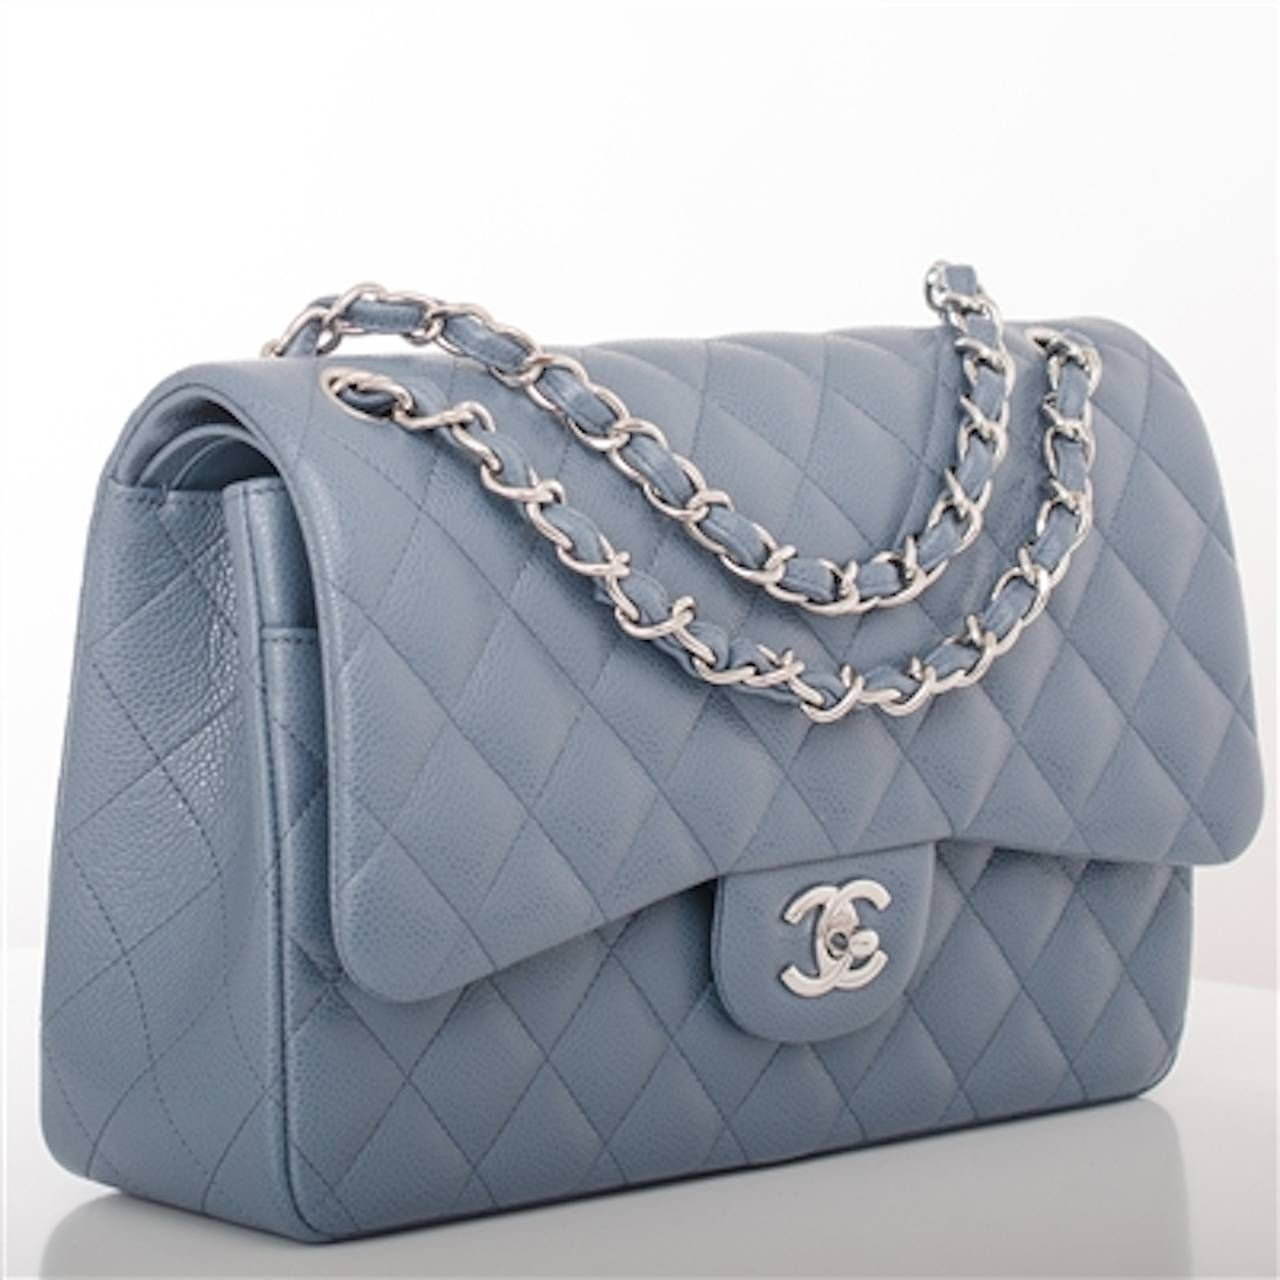 087f7372935a Chanel Blue Quilted Caviar Jumbo Classic 2.55 Double Flap Bag   1stdibs.com